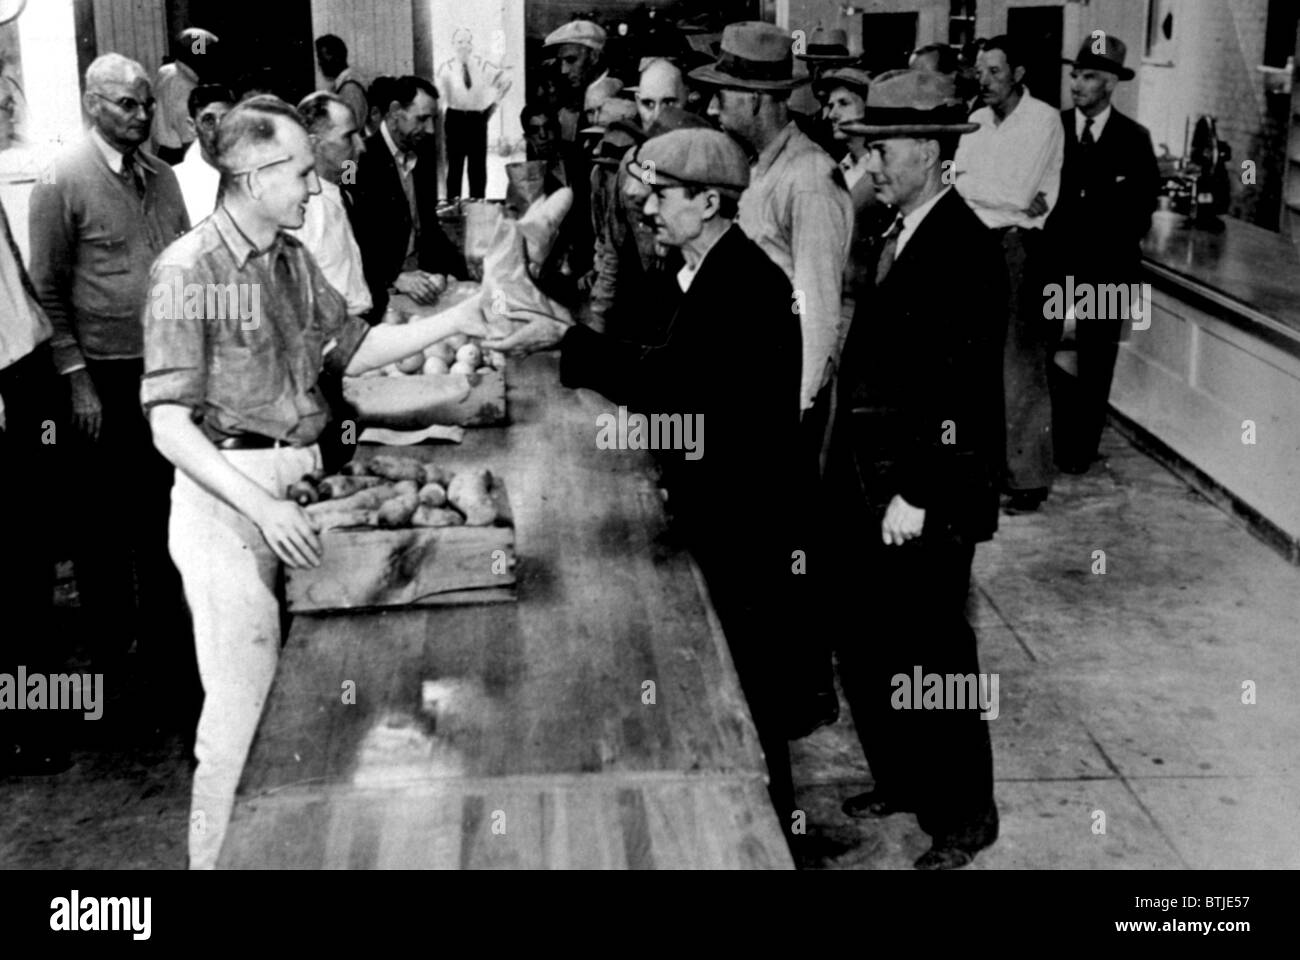 LA County Relief Agency gives out food during the Great Depression, 1930s - Stock Image